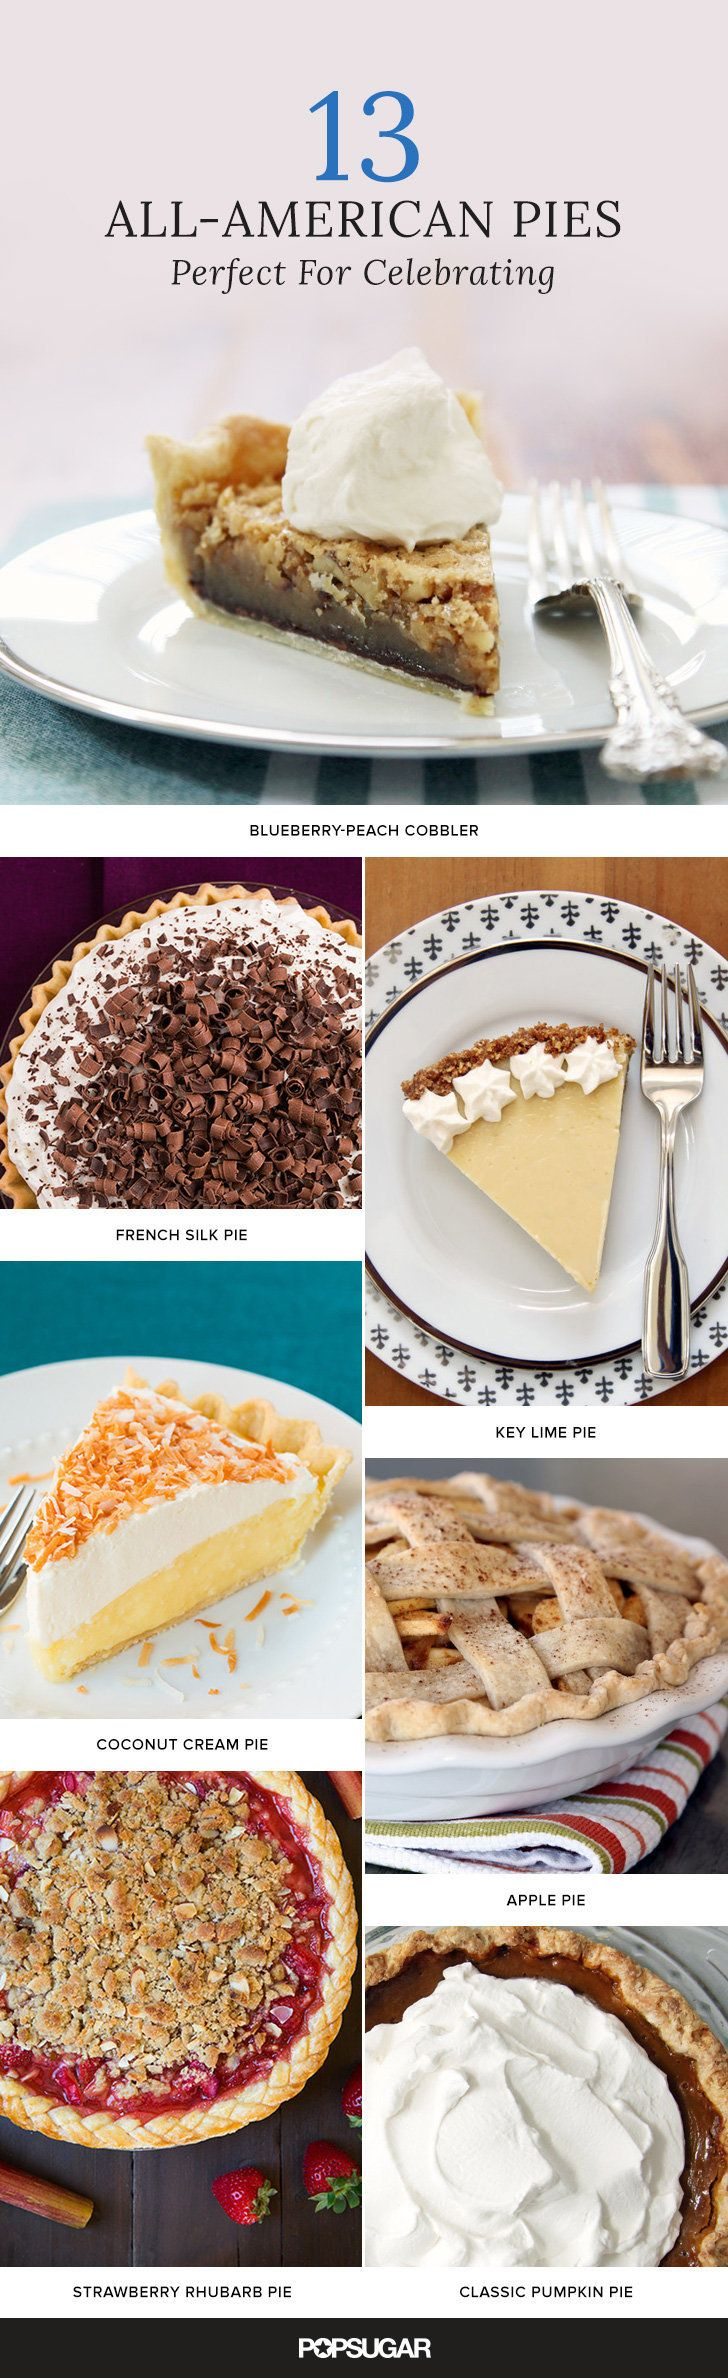 Creative, newfangled pie recipes are fun and fabulous, but sometimes a classic is just what you're craving. From apple to cherry to french silk (a pie that is actually Southern, not French), these are the American pie recipes you need to know.